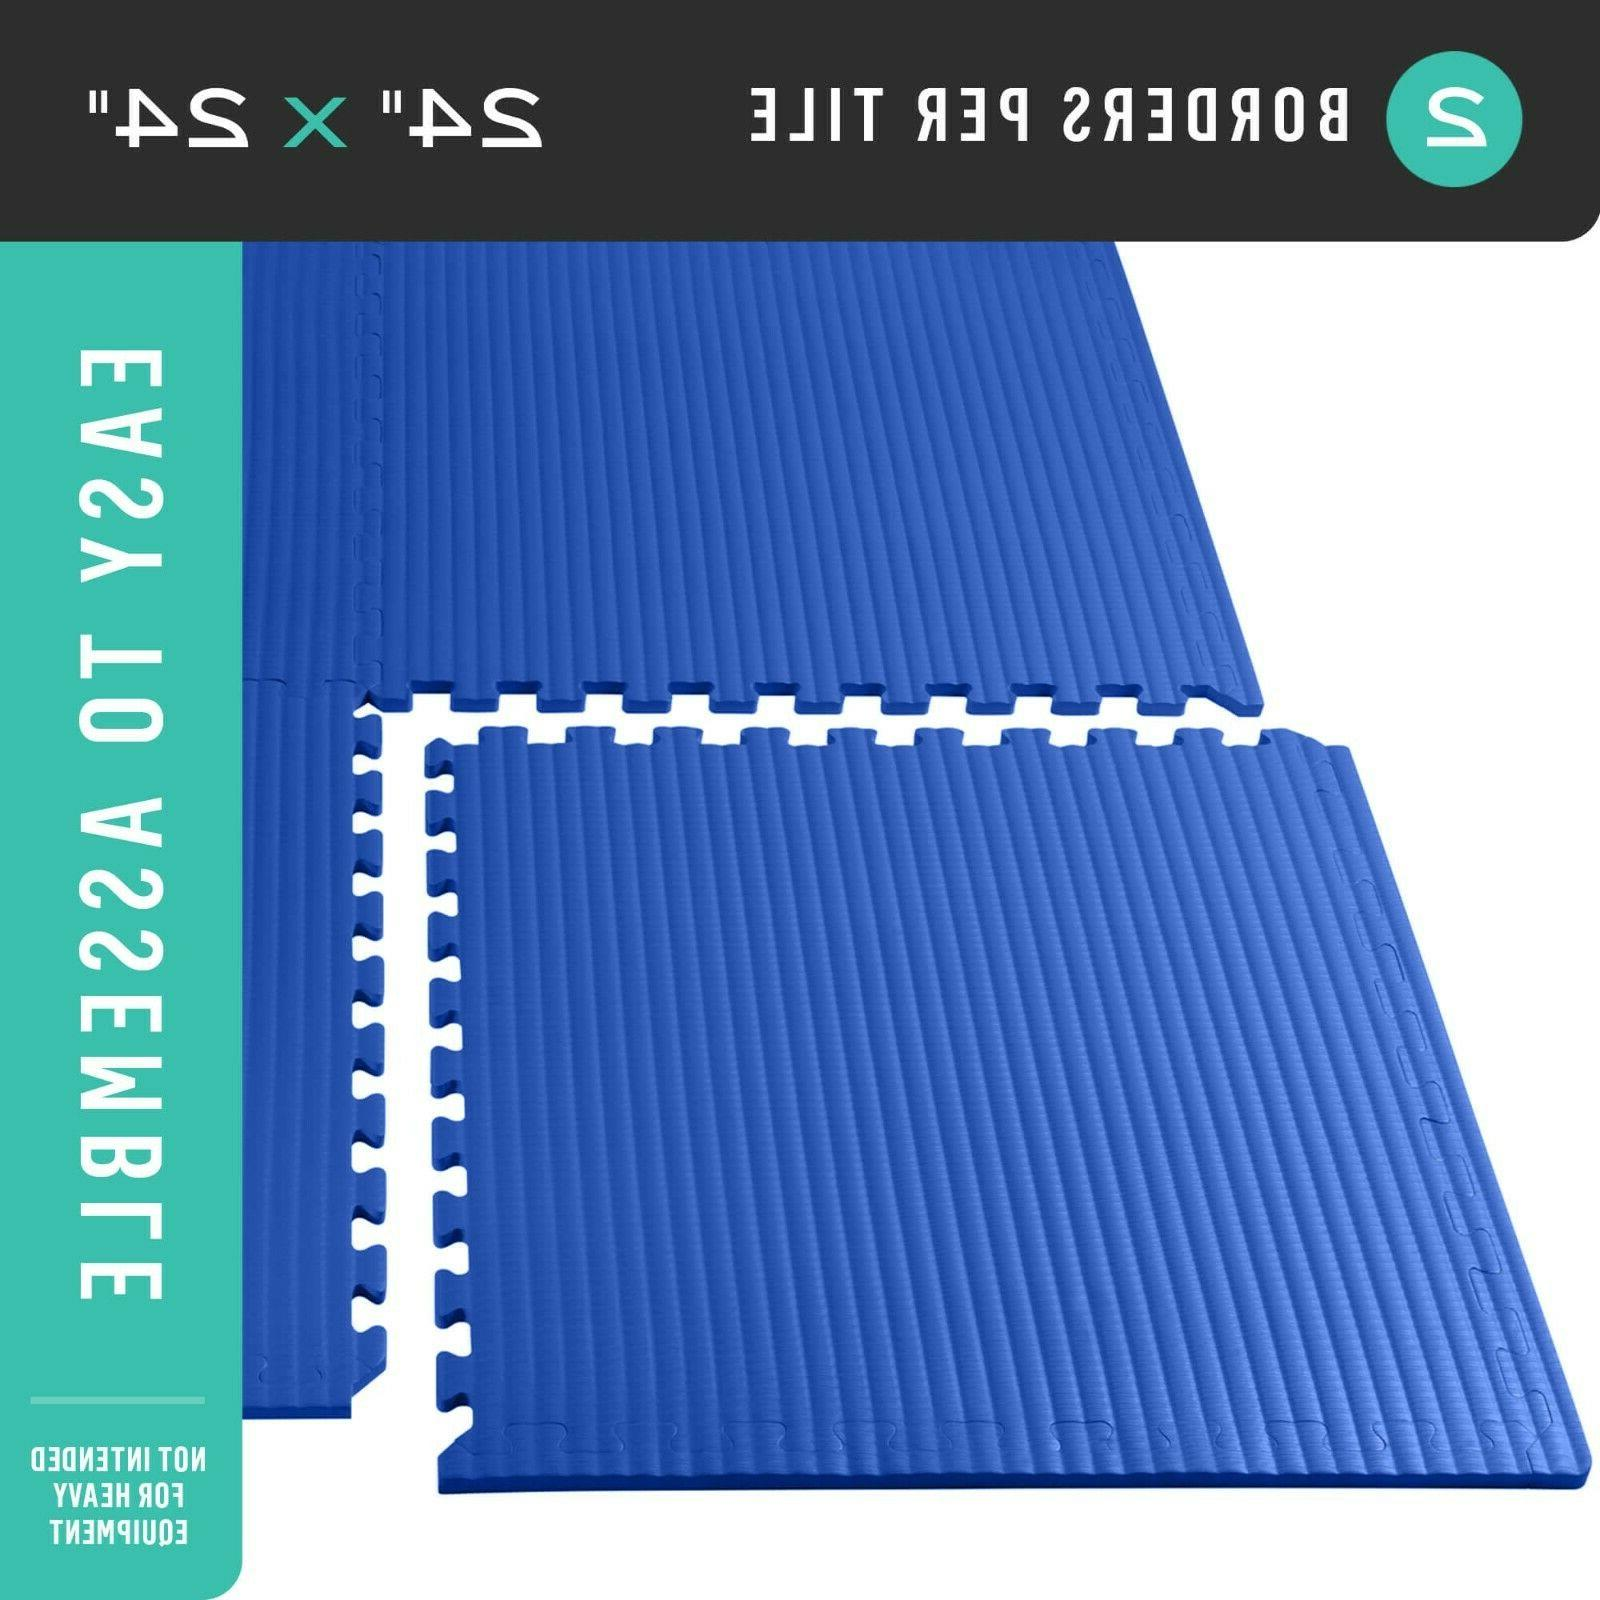 100 sq ft. Pattern Jiu Jitsu Karate MMA Floor Mat